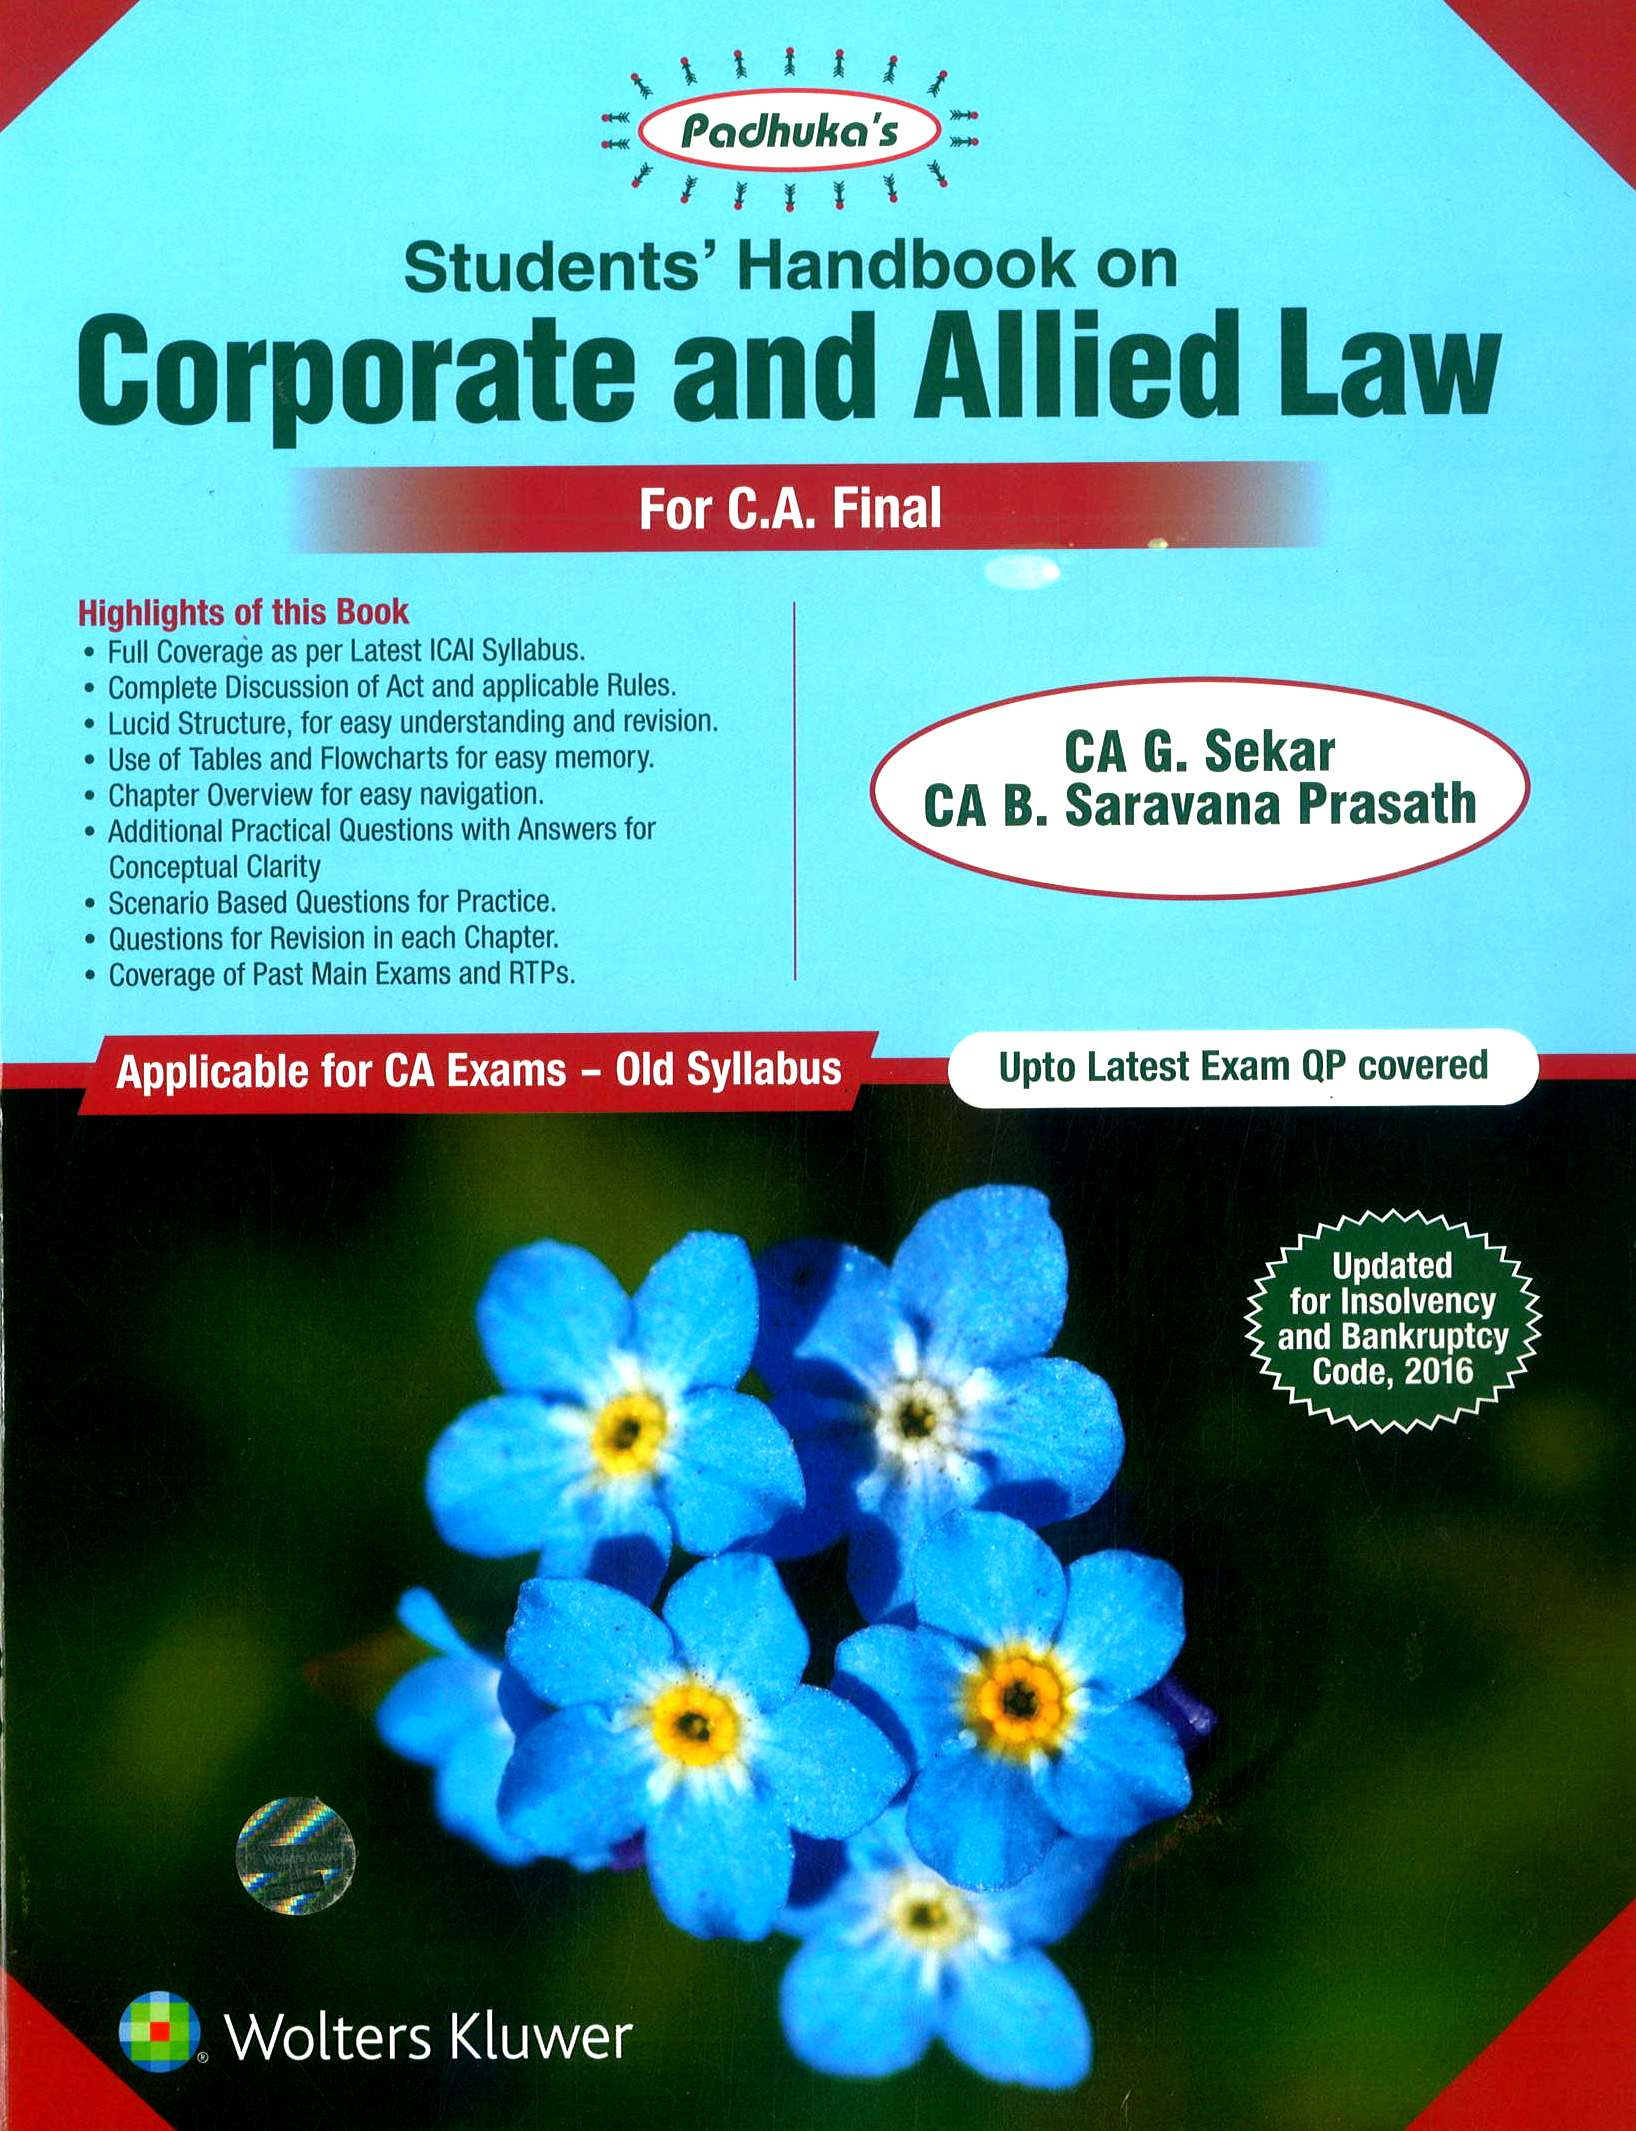 Padhuka's Students'Handbook on Corporate and Allied Law CA Final for Nov 2018 exam by CA G. Sekar and CA B. Saravana Prasath (Wolters Kluwer Publishing) Edition 2018